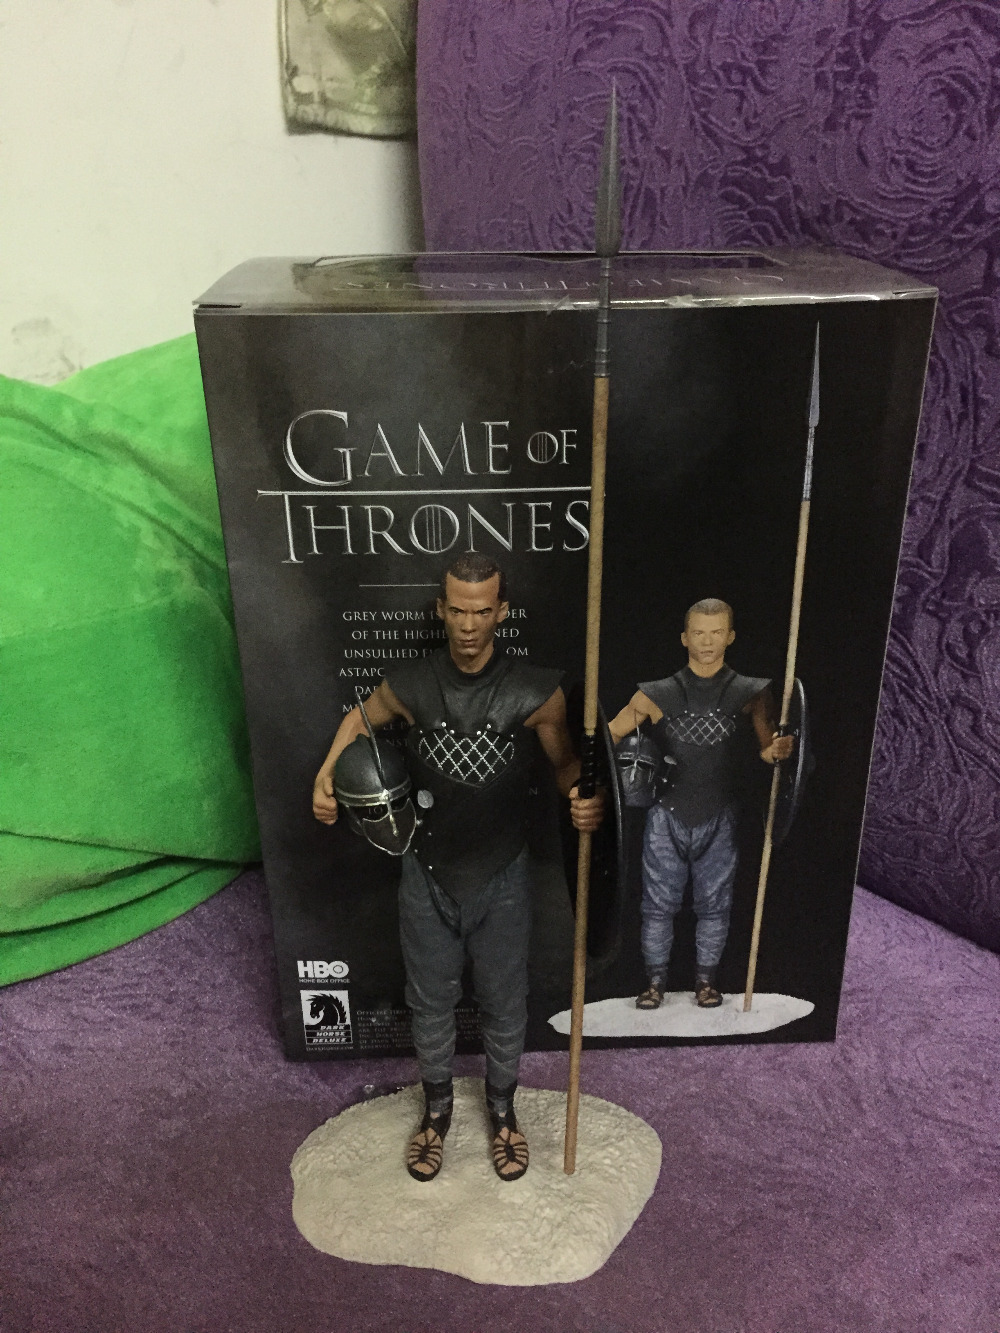 ORIGINAL 2016 NEW Movies Game of Thrones Action Toy Figures Grey Worm Doll Vinyl figures Collection Toy PVC kids toys 12pcs set new sofia the first figures toys princess sofia action figure pvc doll brithday gift toy for children kids toys